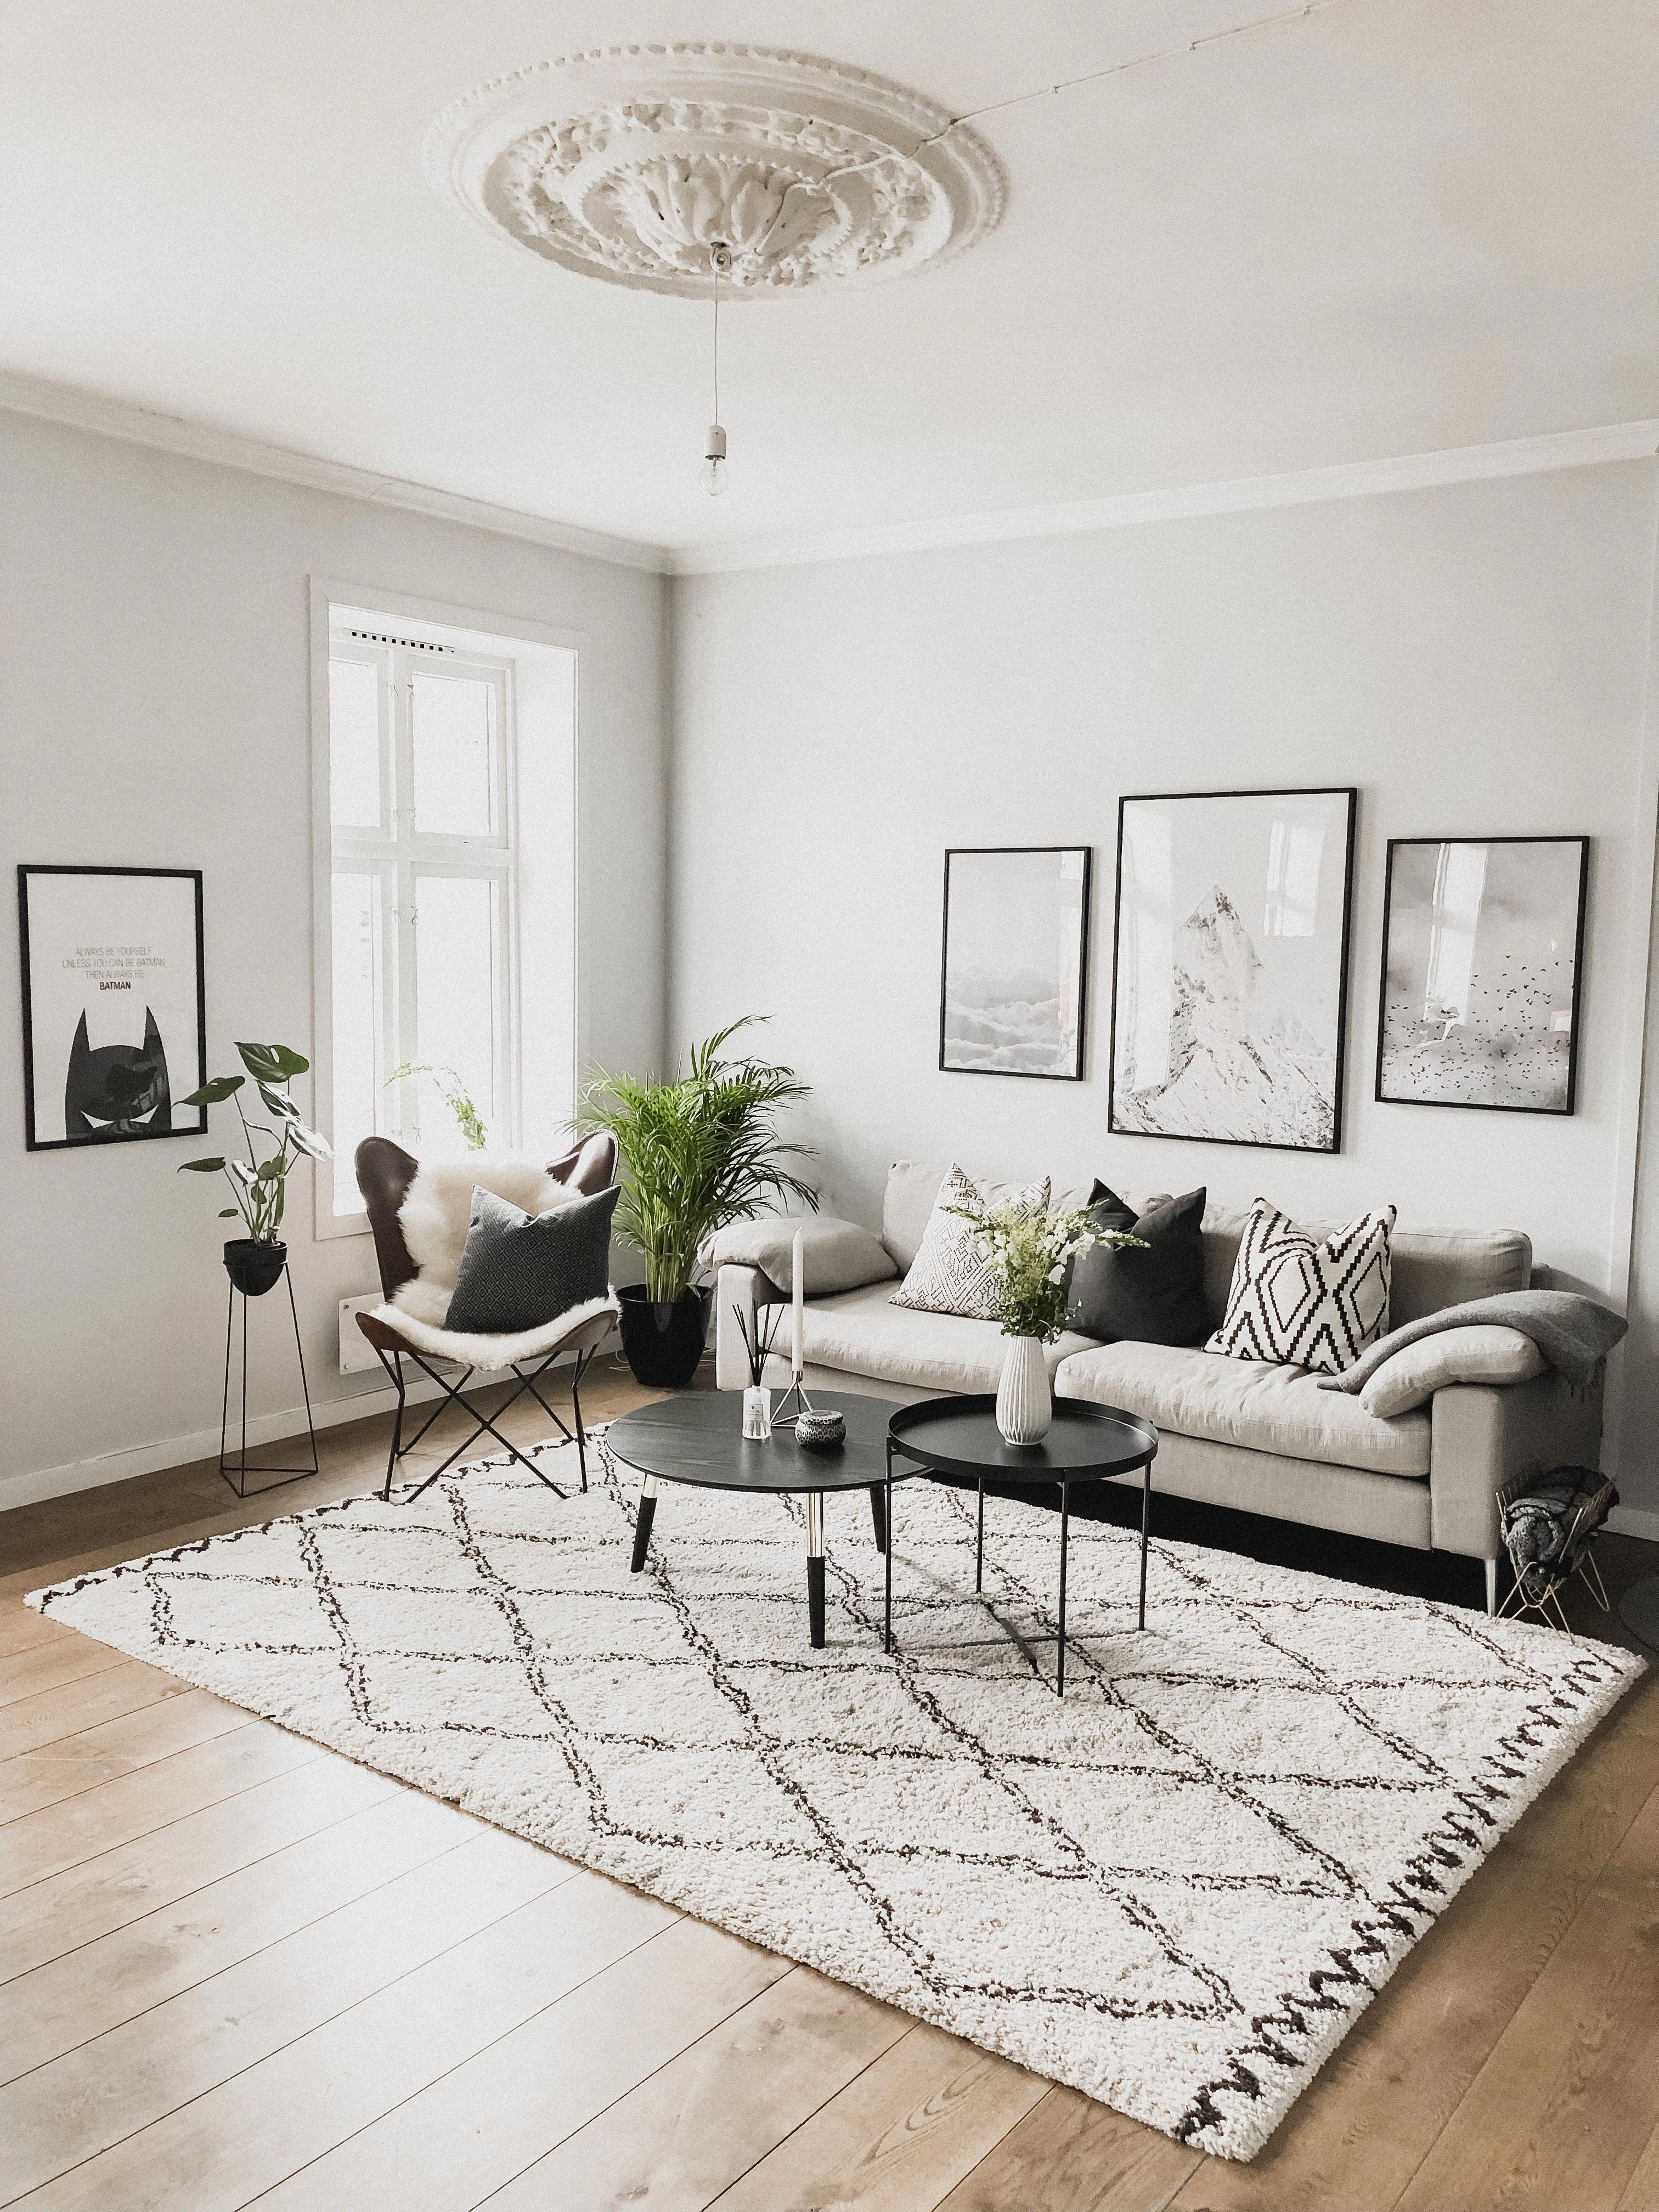 Pin on Industrial style living room